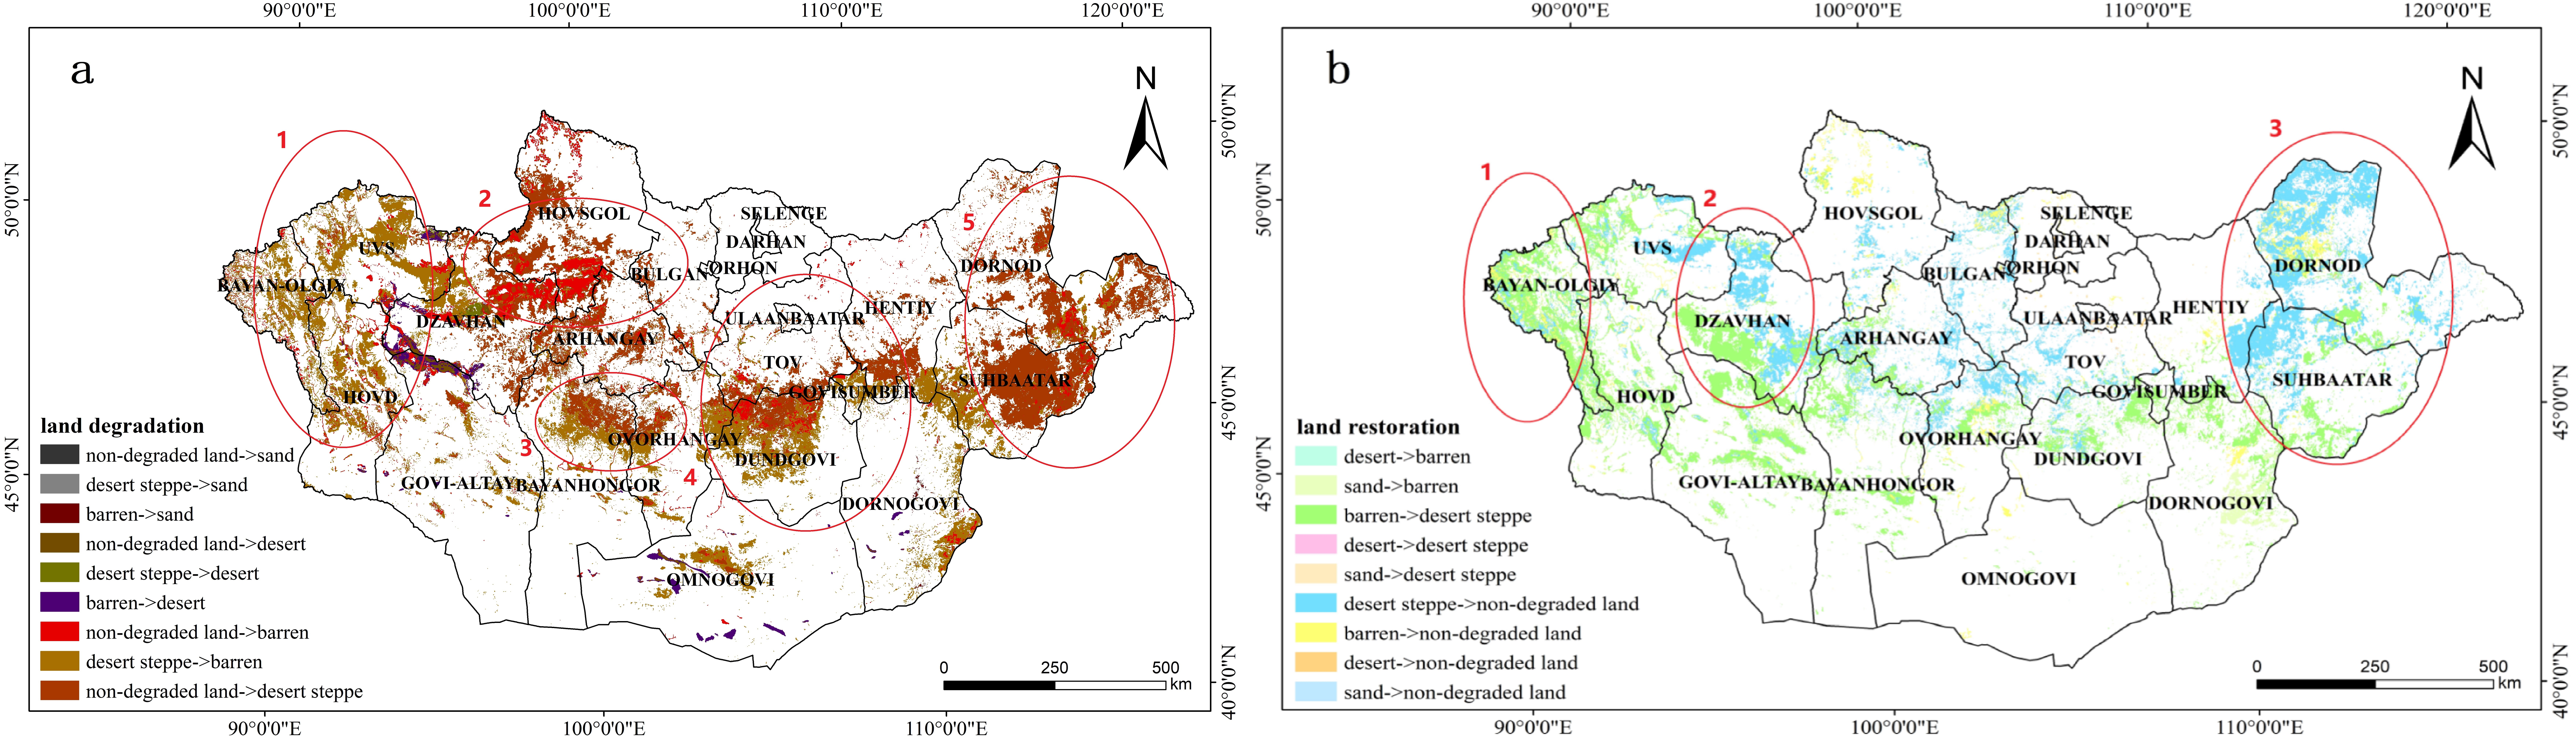 Figure 1: Typical regions of land degradation and land restoration between 1995–2010 in Mongolia. (a) 1990–2010 (land degradation), (b) 1990–2010 (land restoration)